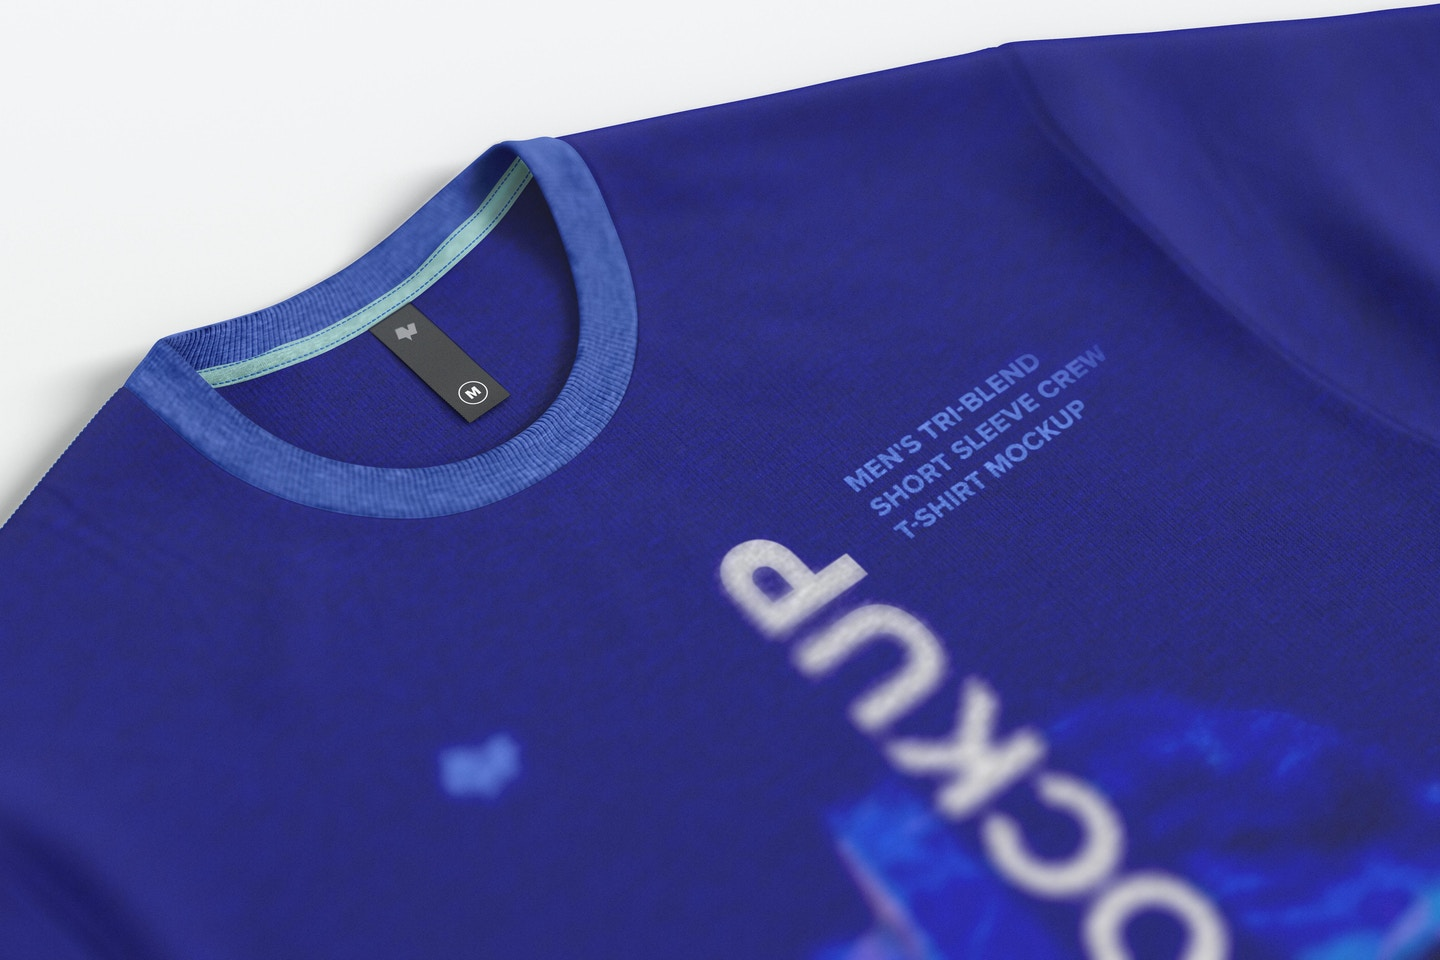 Thin Label Mockup on Men's Tri-Blend Rounded Neck T-Shirt, Close-Up